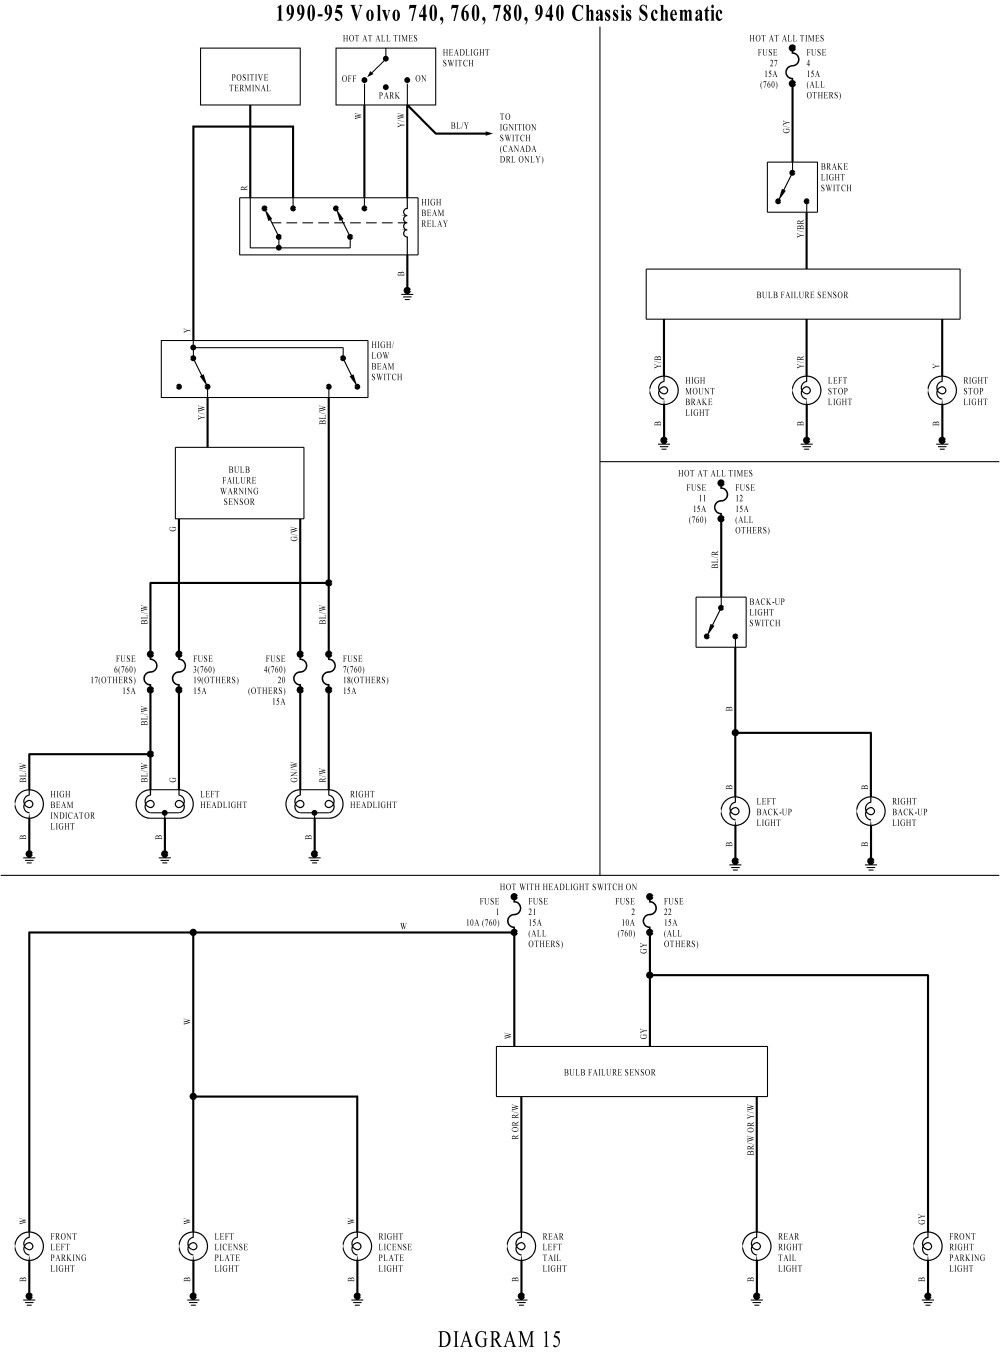 Volvo 740 Wiring Diagram Starter | Wiring Schematic Diagram ... on datsun 620 wiring diagram, 93 nissan pickup water pump, 93 nissan pickup automatic transmission, 93 nissan pickup frame, 93 nissan pickup owner's manual, 93 nissan pickup fuel tank, 1995 nissan pathfinder radio wiring diagram, 93 nissan pickup timing marks, 93 nissan pickup suspension, 93 nissan altima wiring diagram, 93 nissan pickup engine, 93 nissan pickup parts, 93 nissan pickup repair manual, datsun 521 wiring diagram,